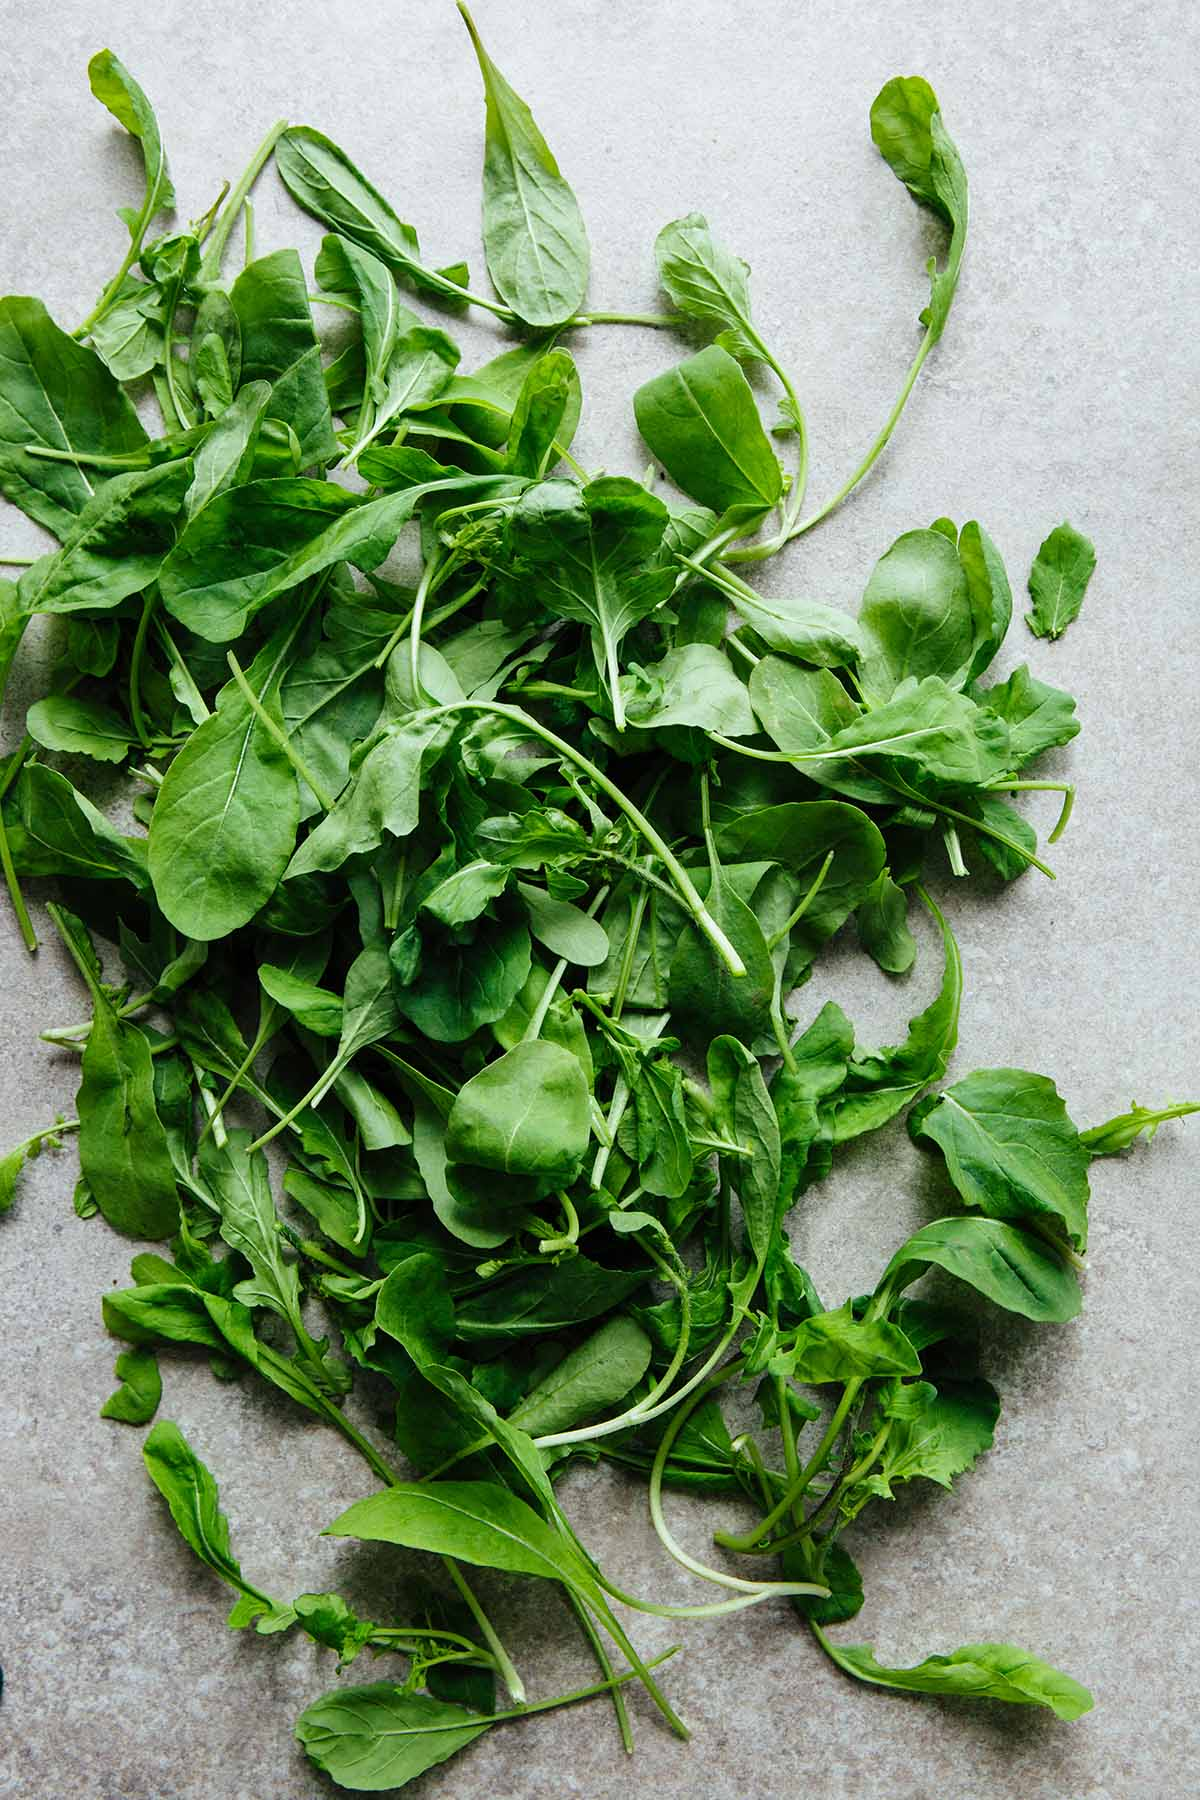 A pile of fresh arugula leaves on a stone surface.